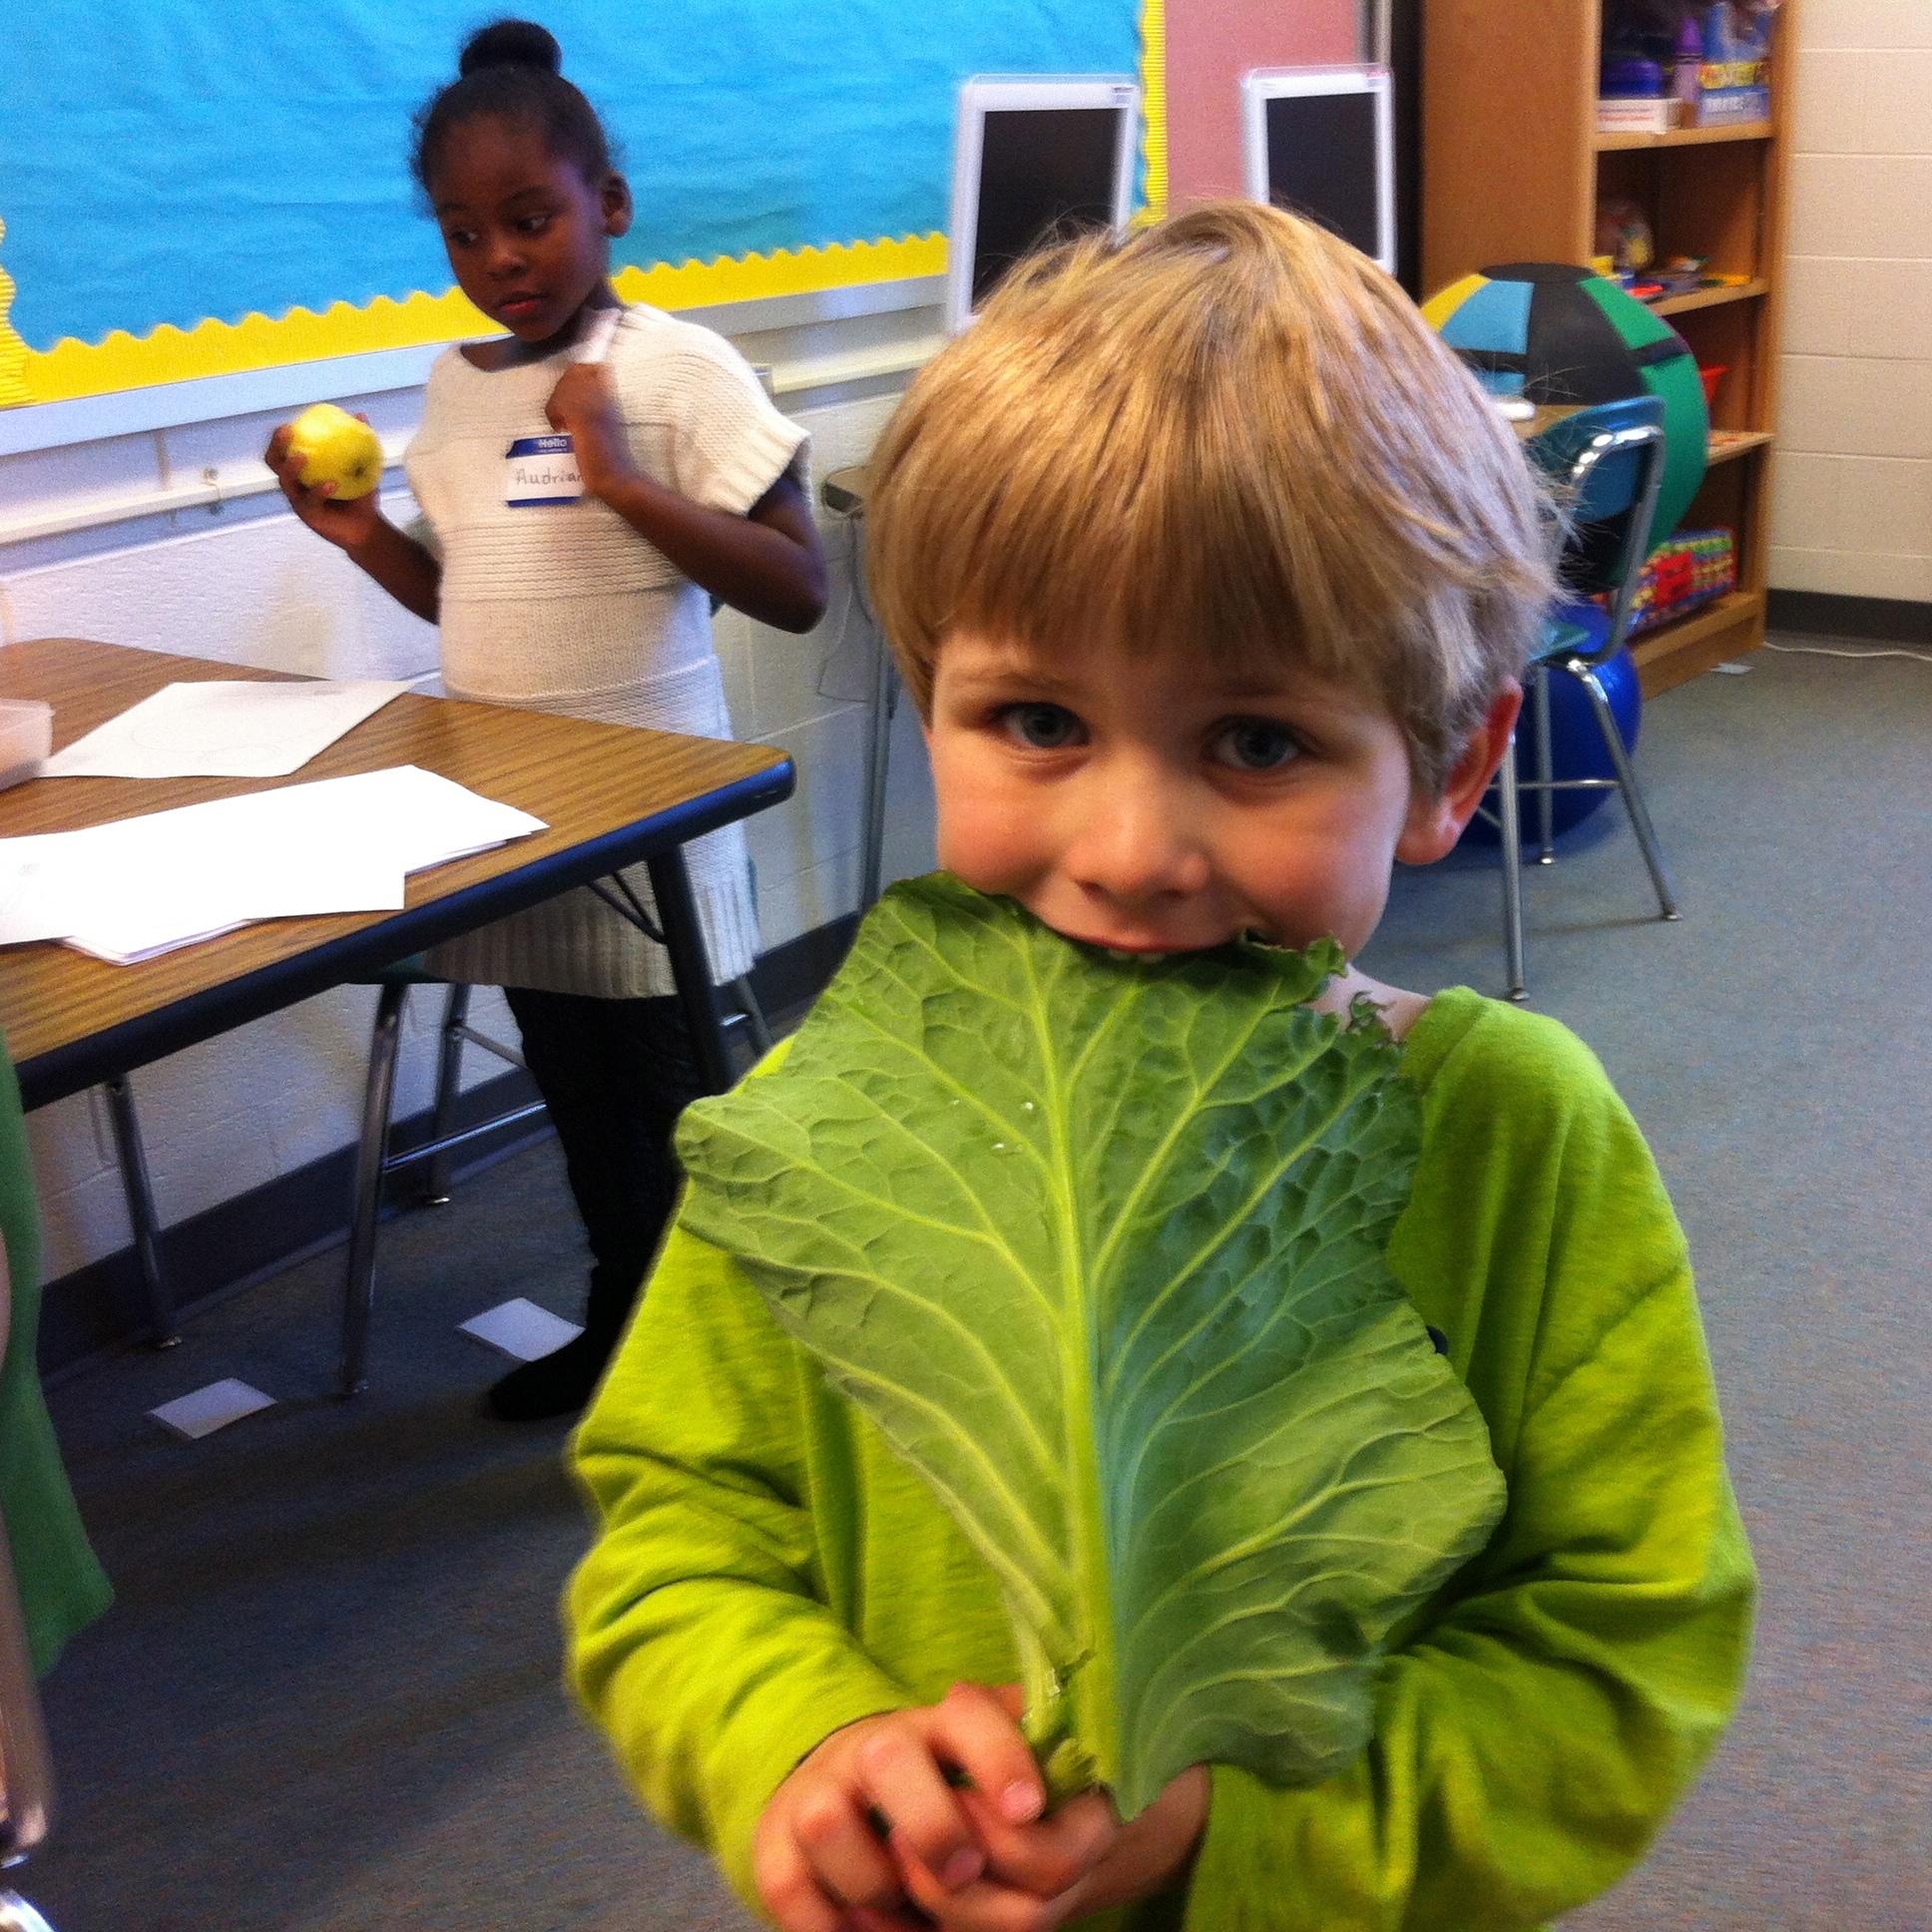 Help us get more kids hooked on fresh fruits and veggies